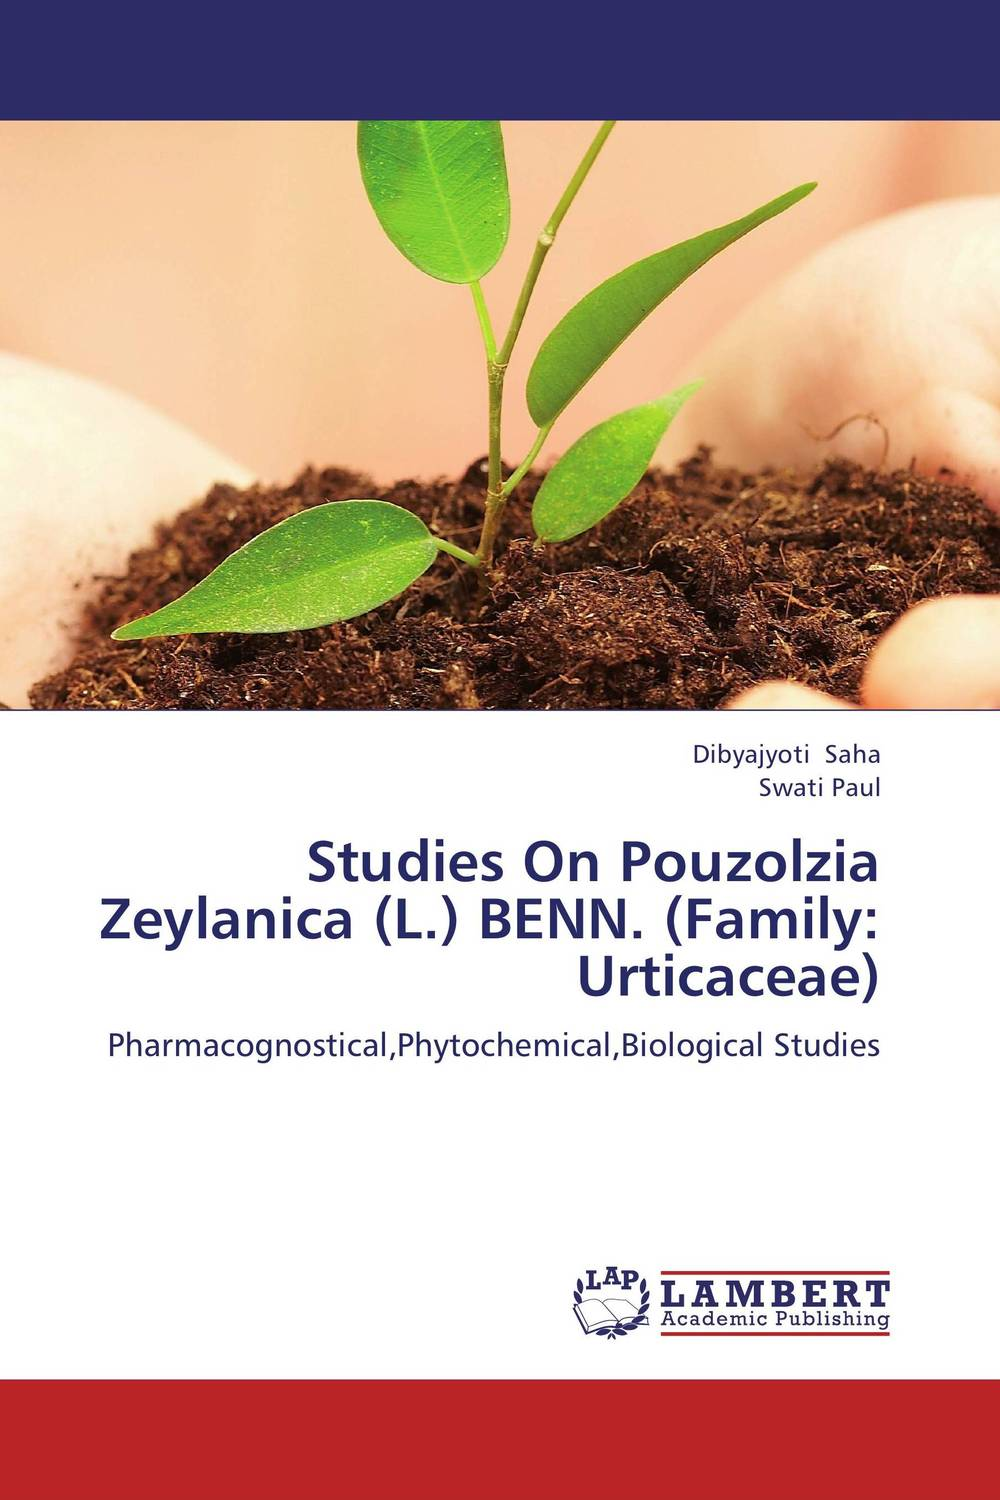 Studies On Pouzolzia Zeylanica (L.) BENN. (Family: Urticaceae) phytochemical investigation of the flavonoids